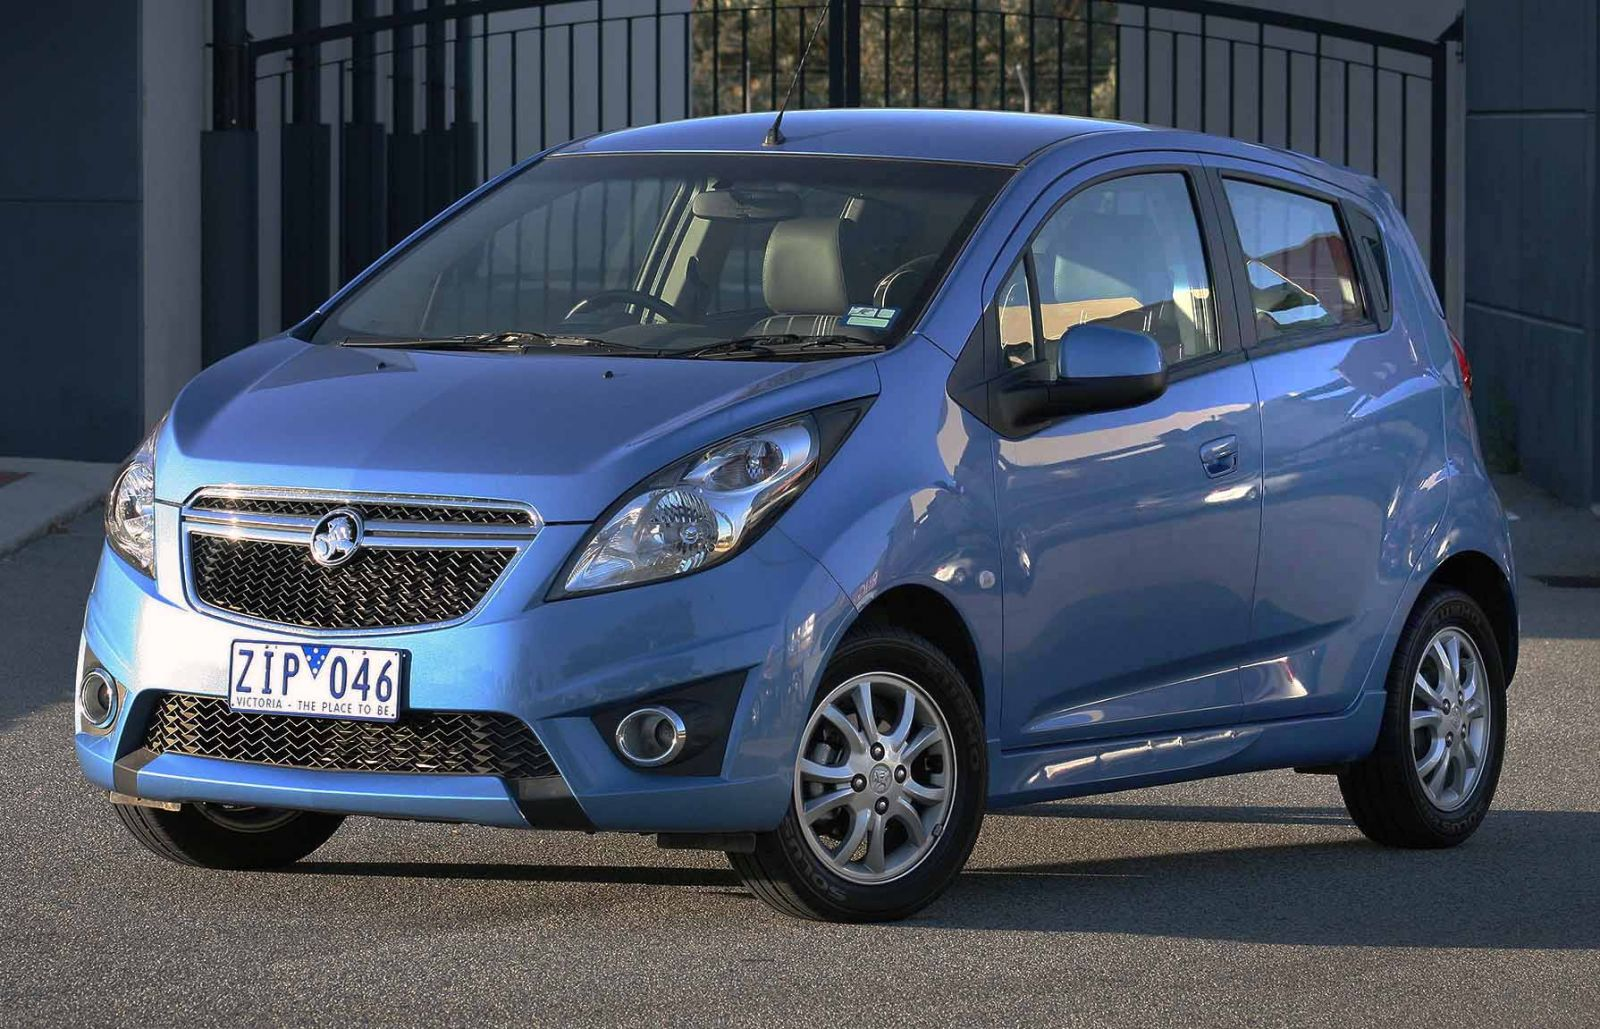 2013 Holden Barina Spark CD Automatic Hatch Review